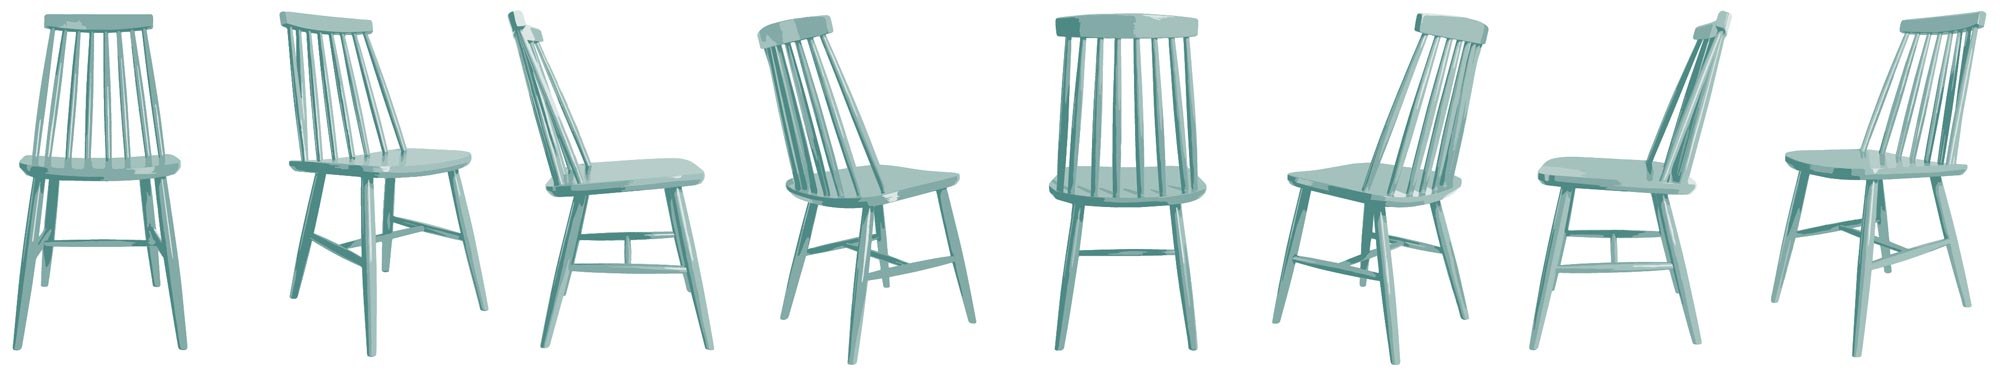 Mid Century Chairs Pattern repeat only